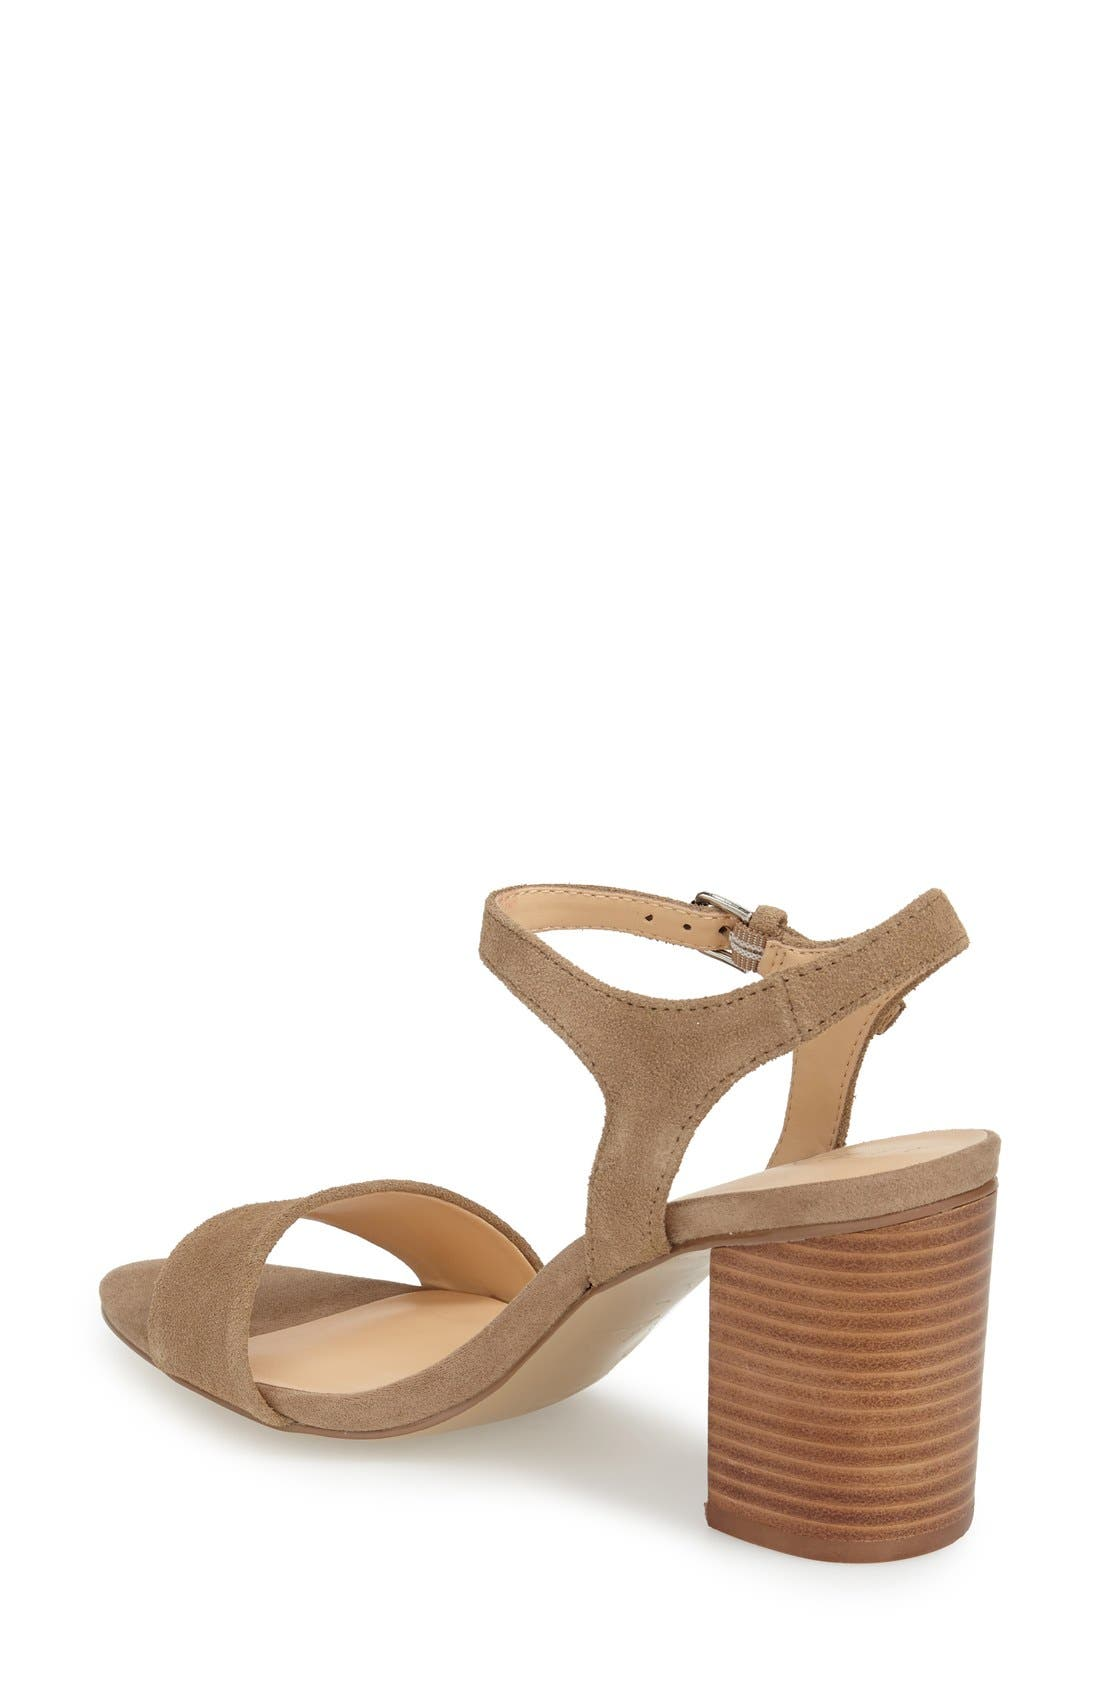 Alternate Image 2  - Sole Society 'Linny' Ankle Strap Sandal (Women)